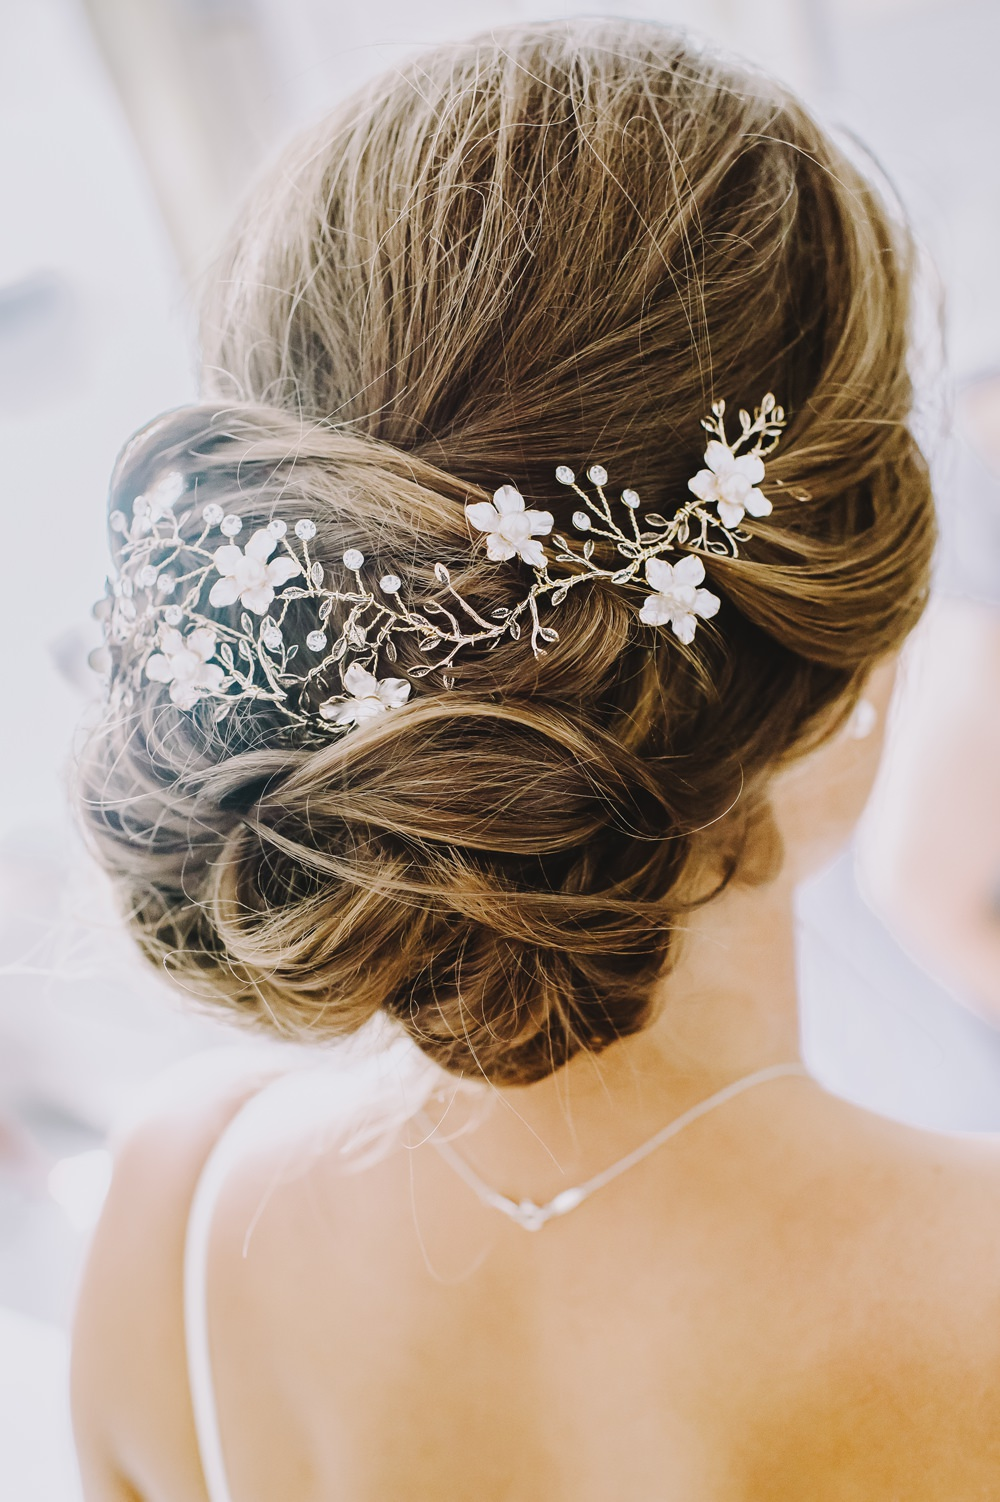 Bride Bridal Hair Style Up Do Rustic Accessory Vine Maryland Wedding L. Hewitt Photography